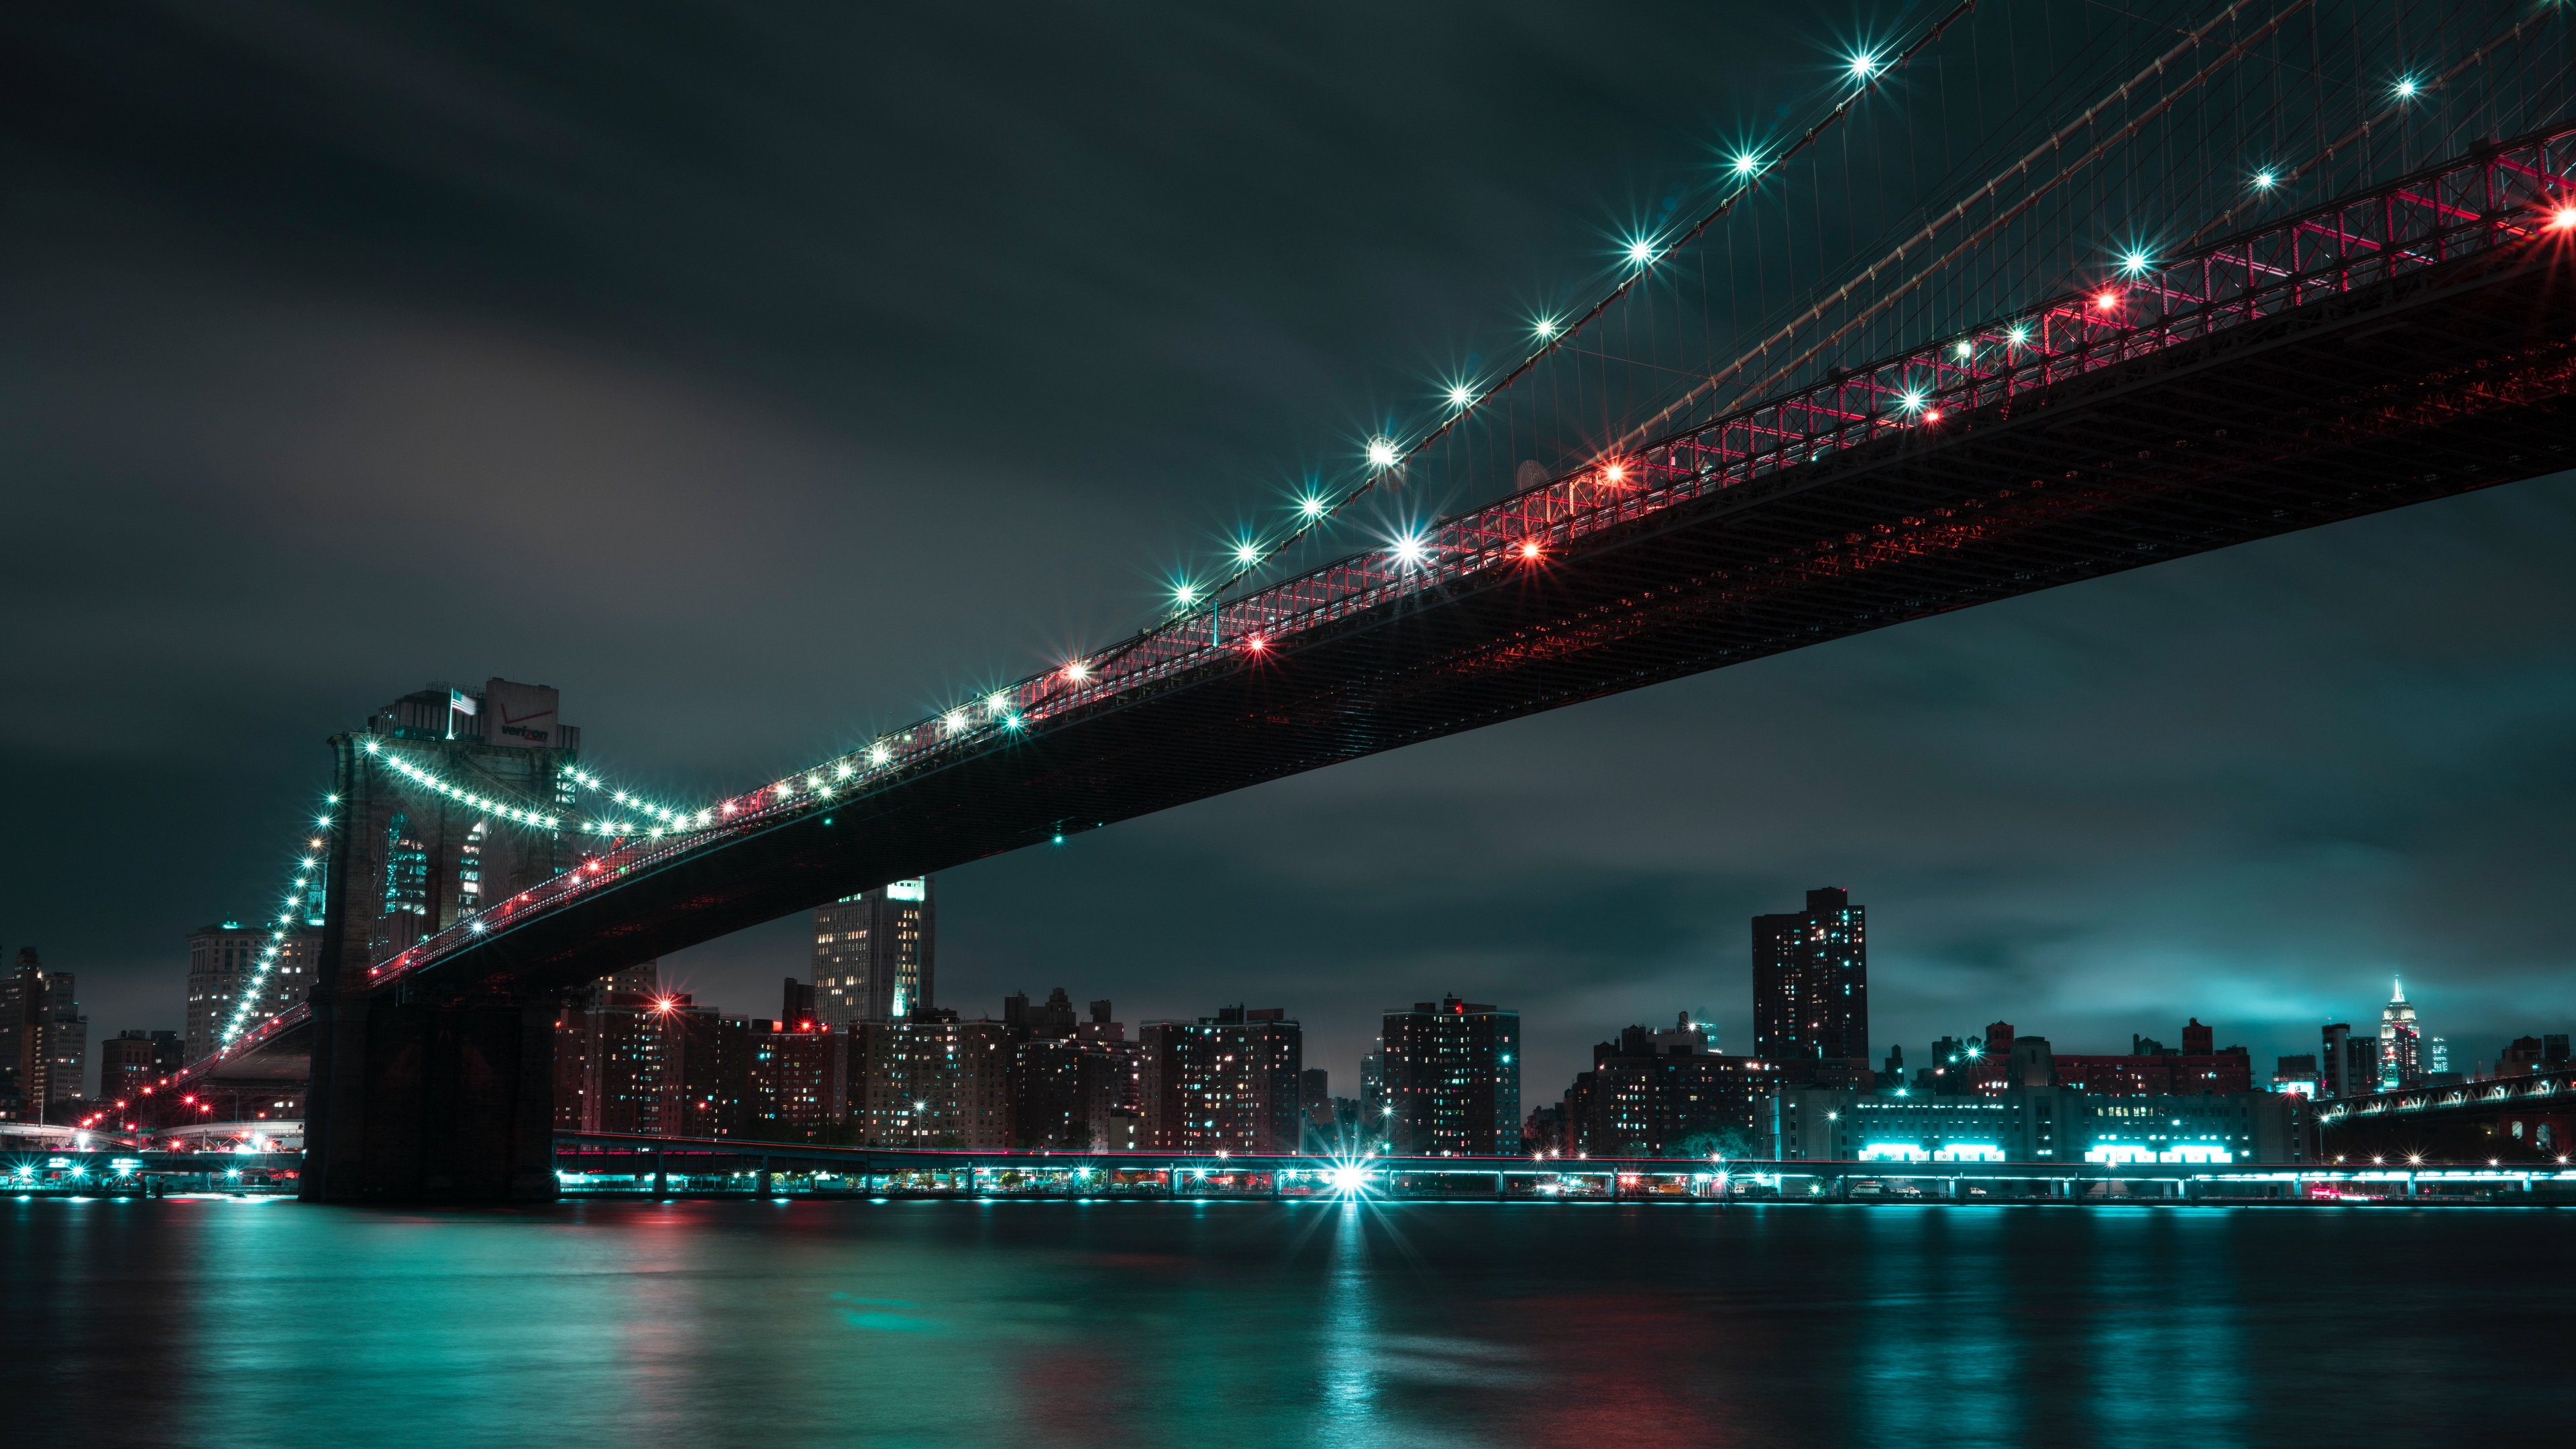 wallpaper 1366 x 786 hd,metropolitan area,night,cityscape,bridge,city